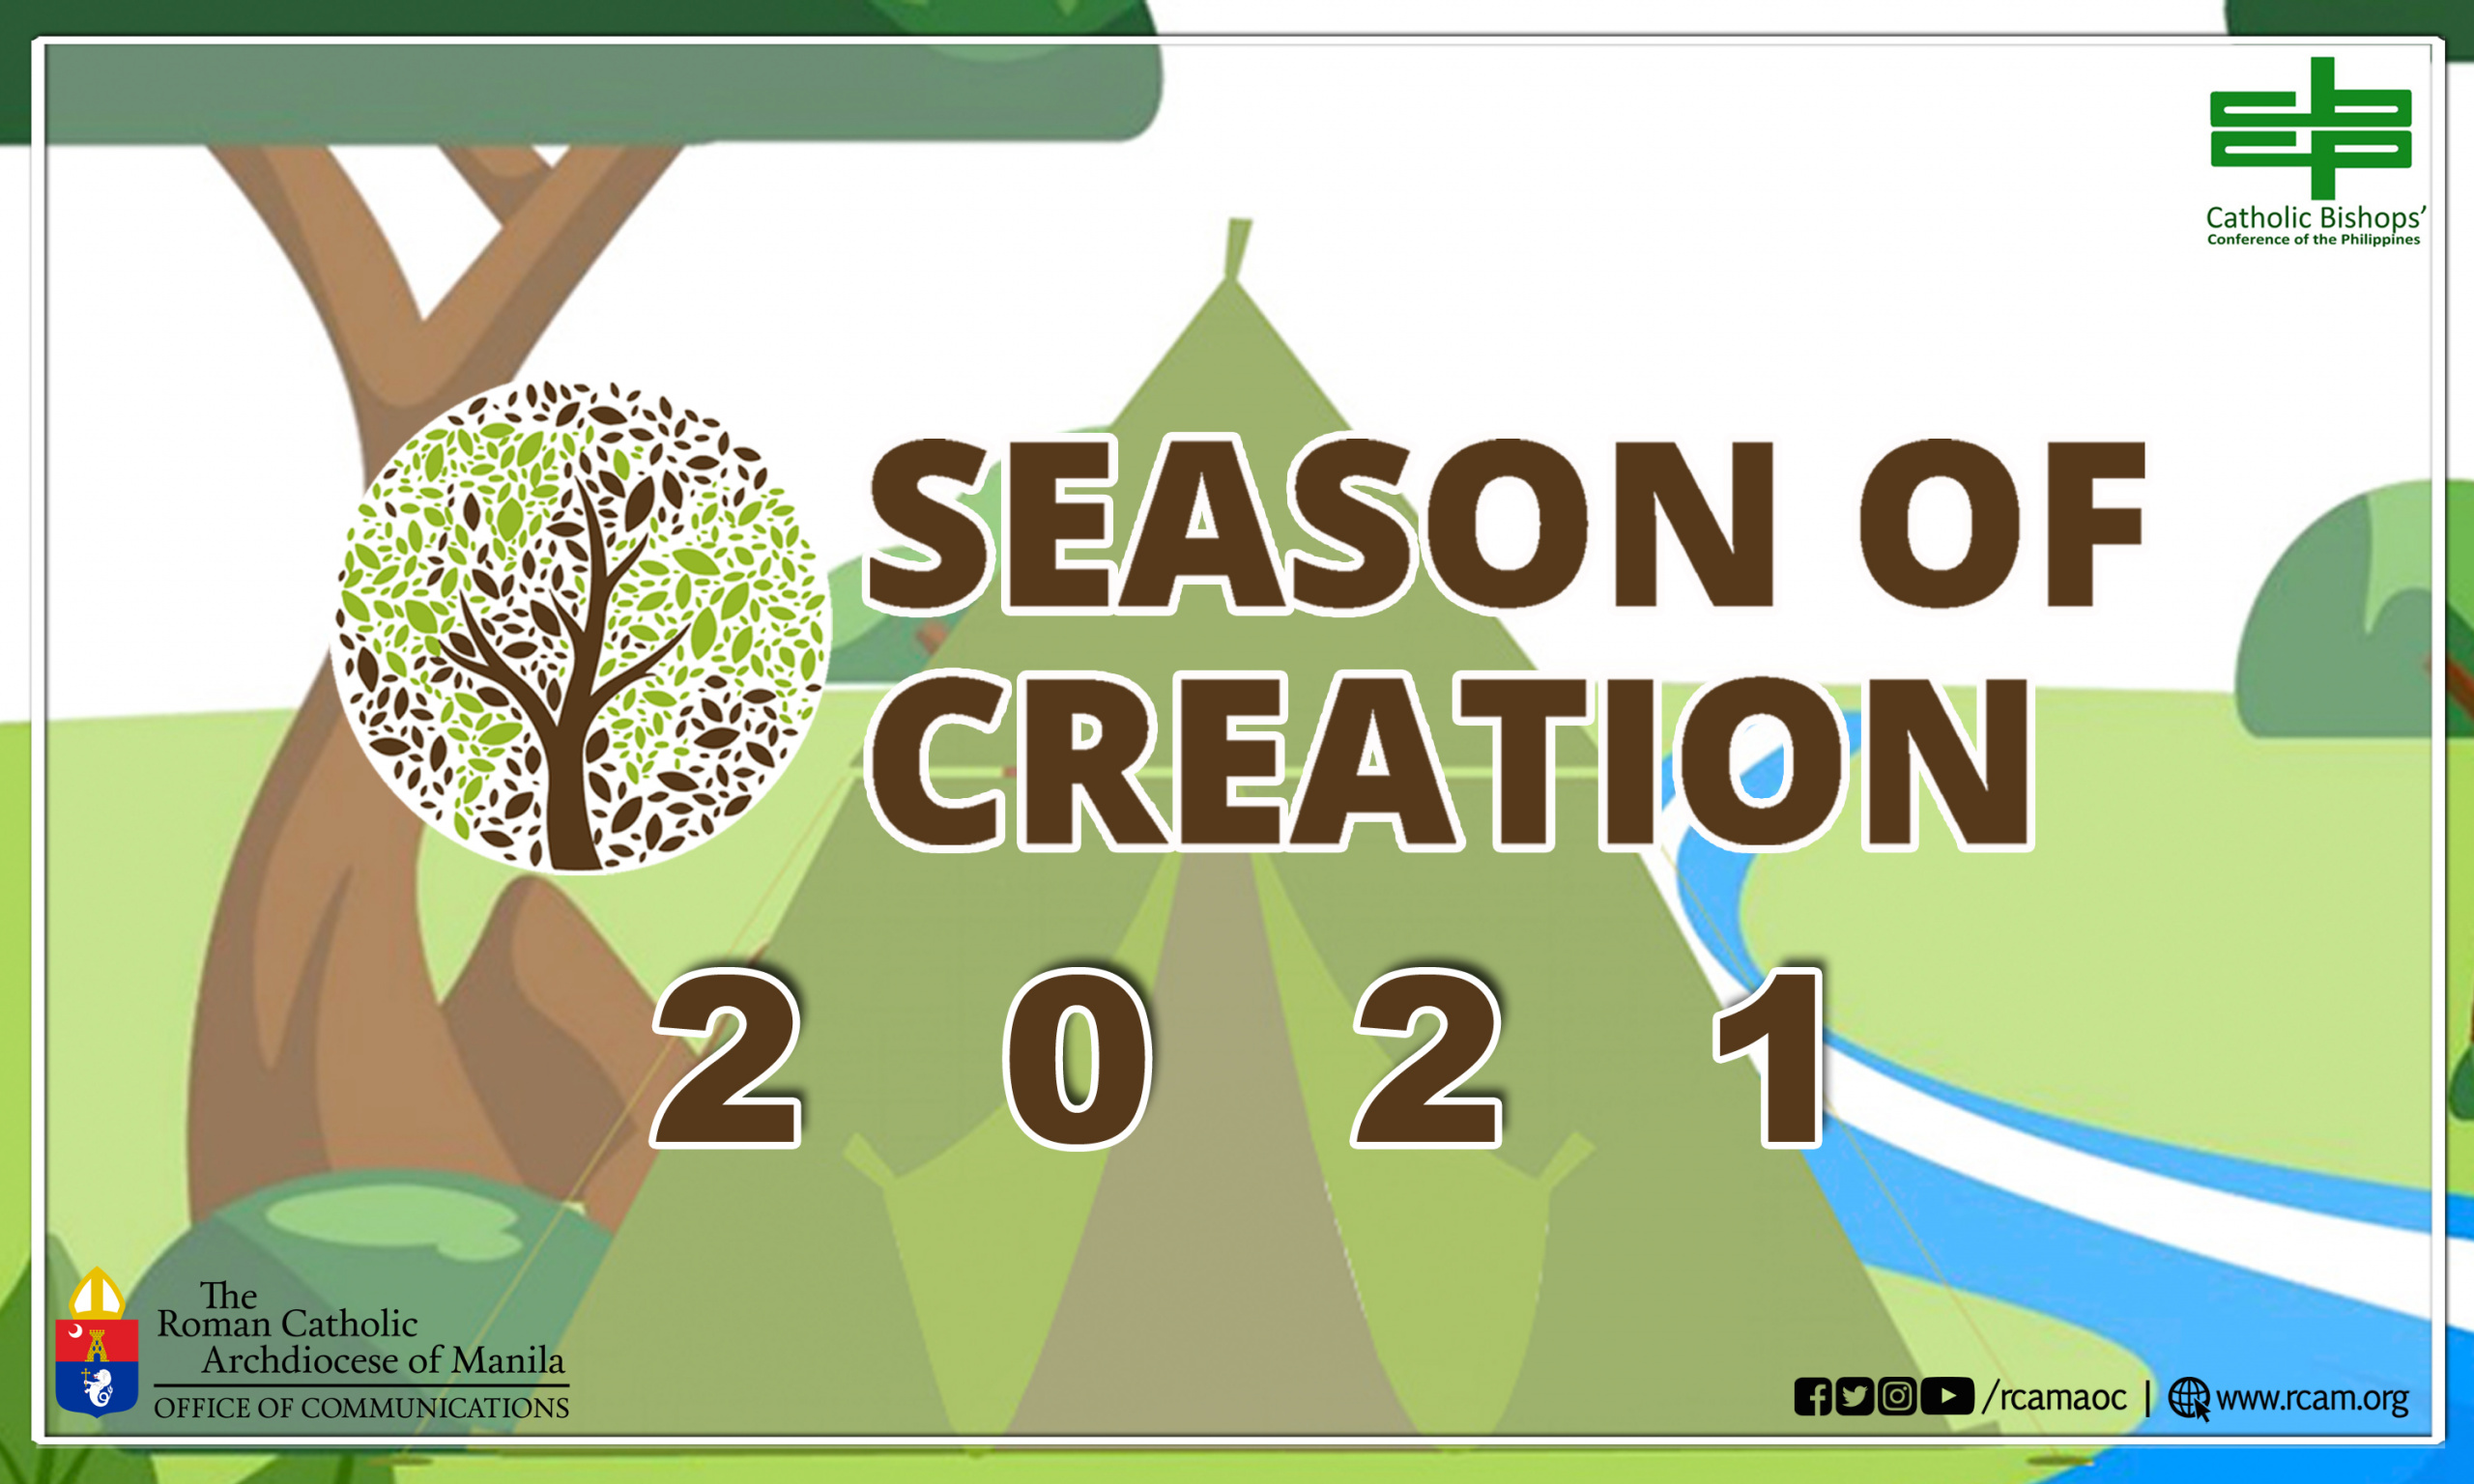 Season of Creation calls for Urgent Action for World at brink of Catastrophe